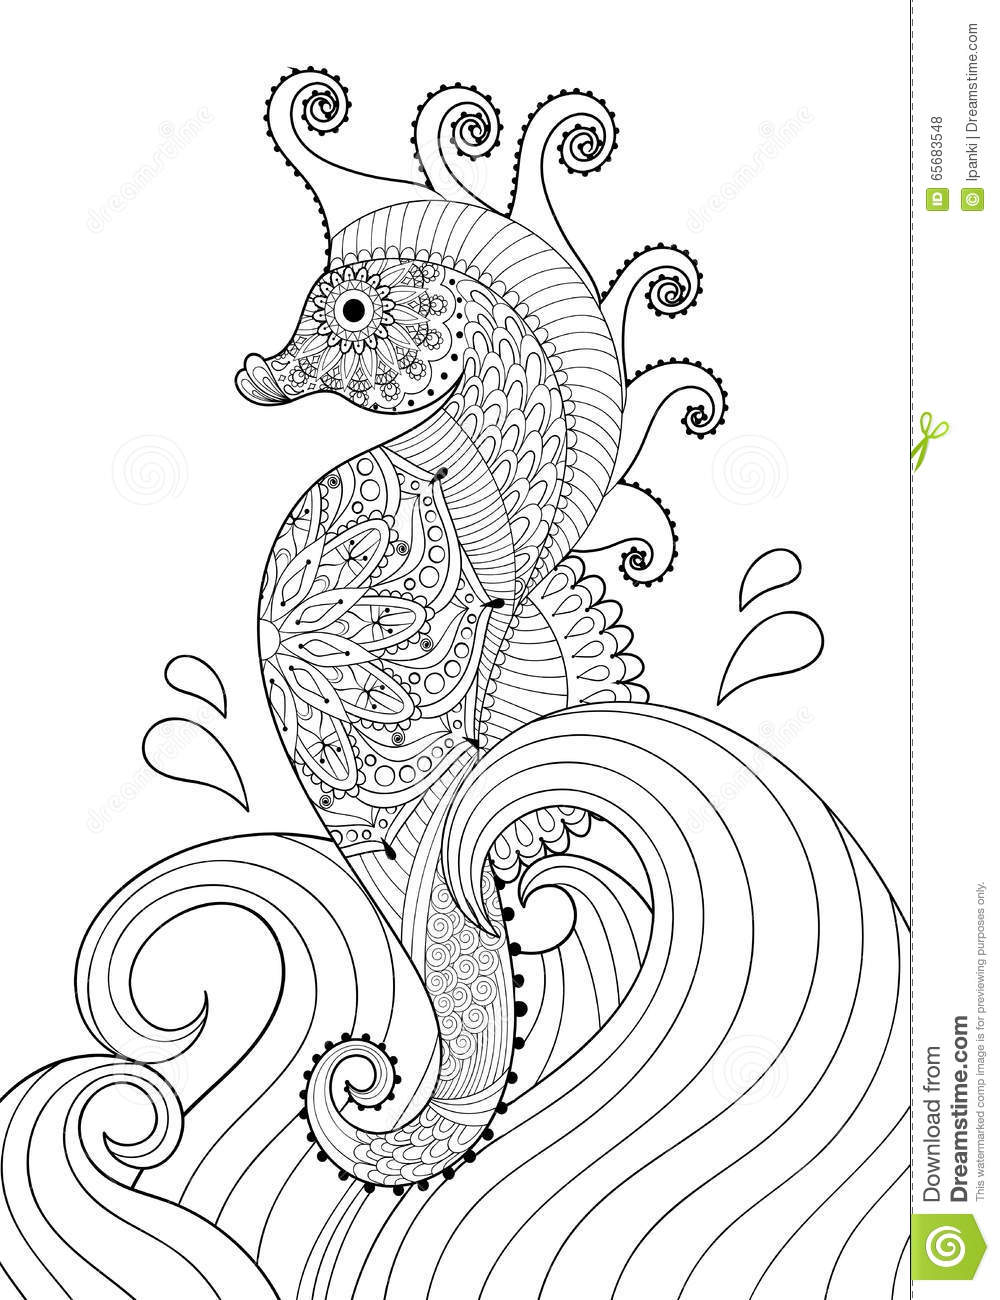 Hand Drawn Artistic Sea Horse In Waves For Adult Coloring